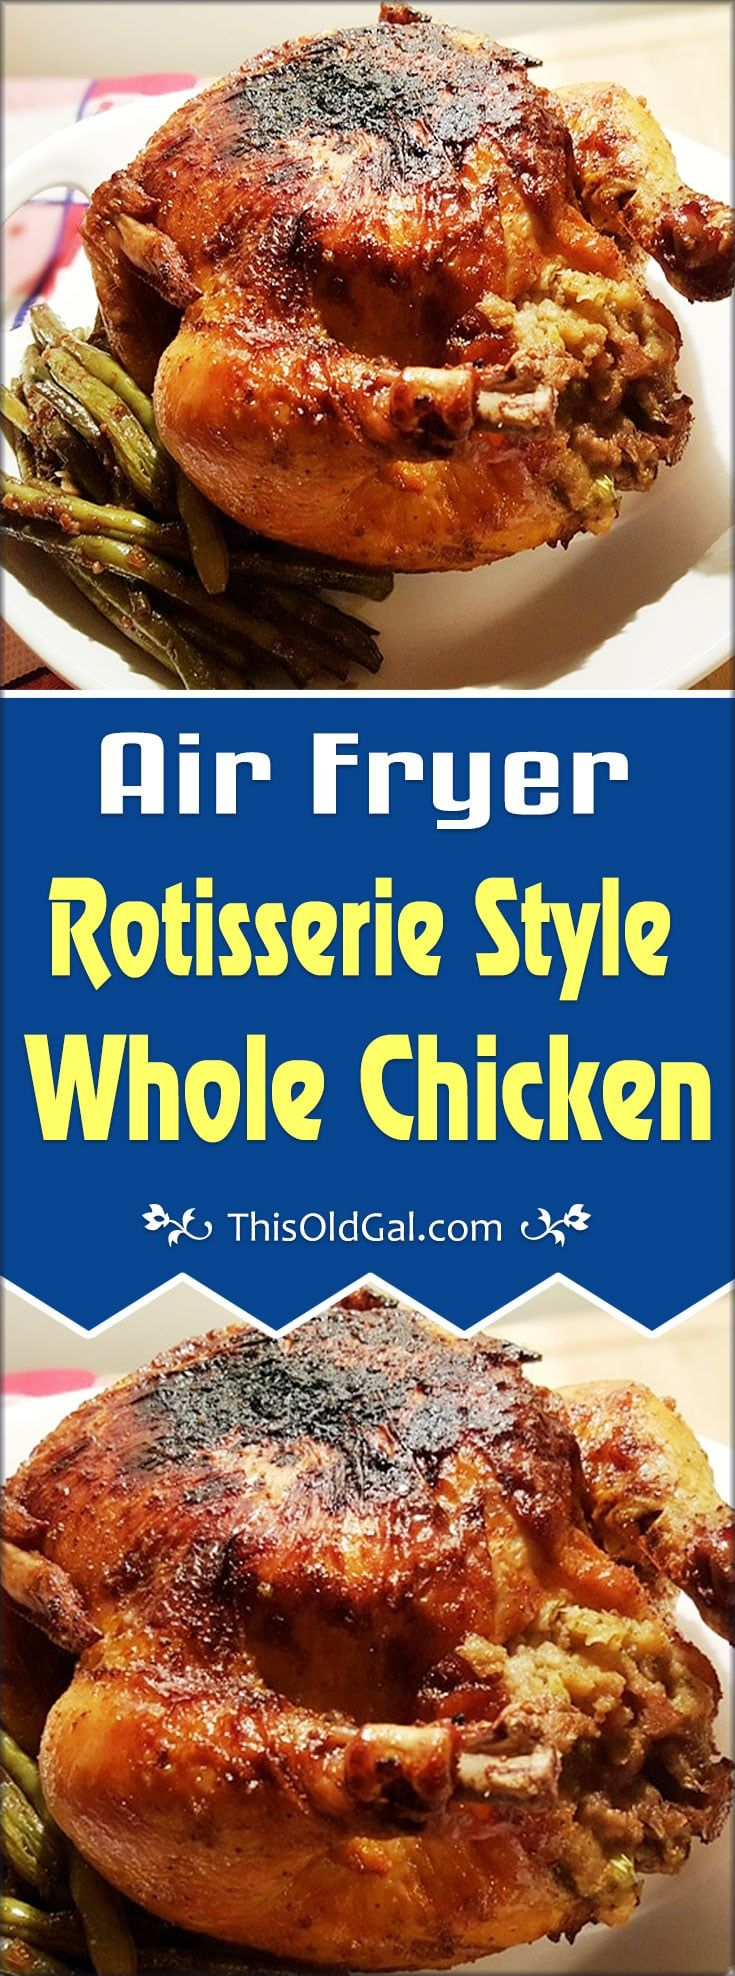 Rotisserie Style Whole Chicken Air Fryer Method